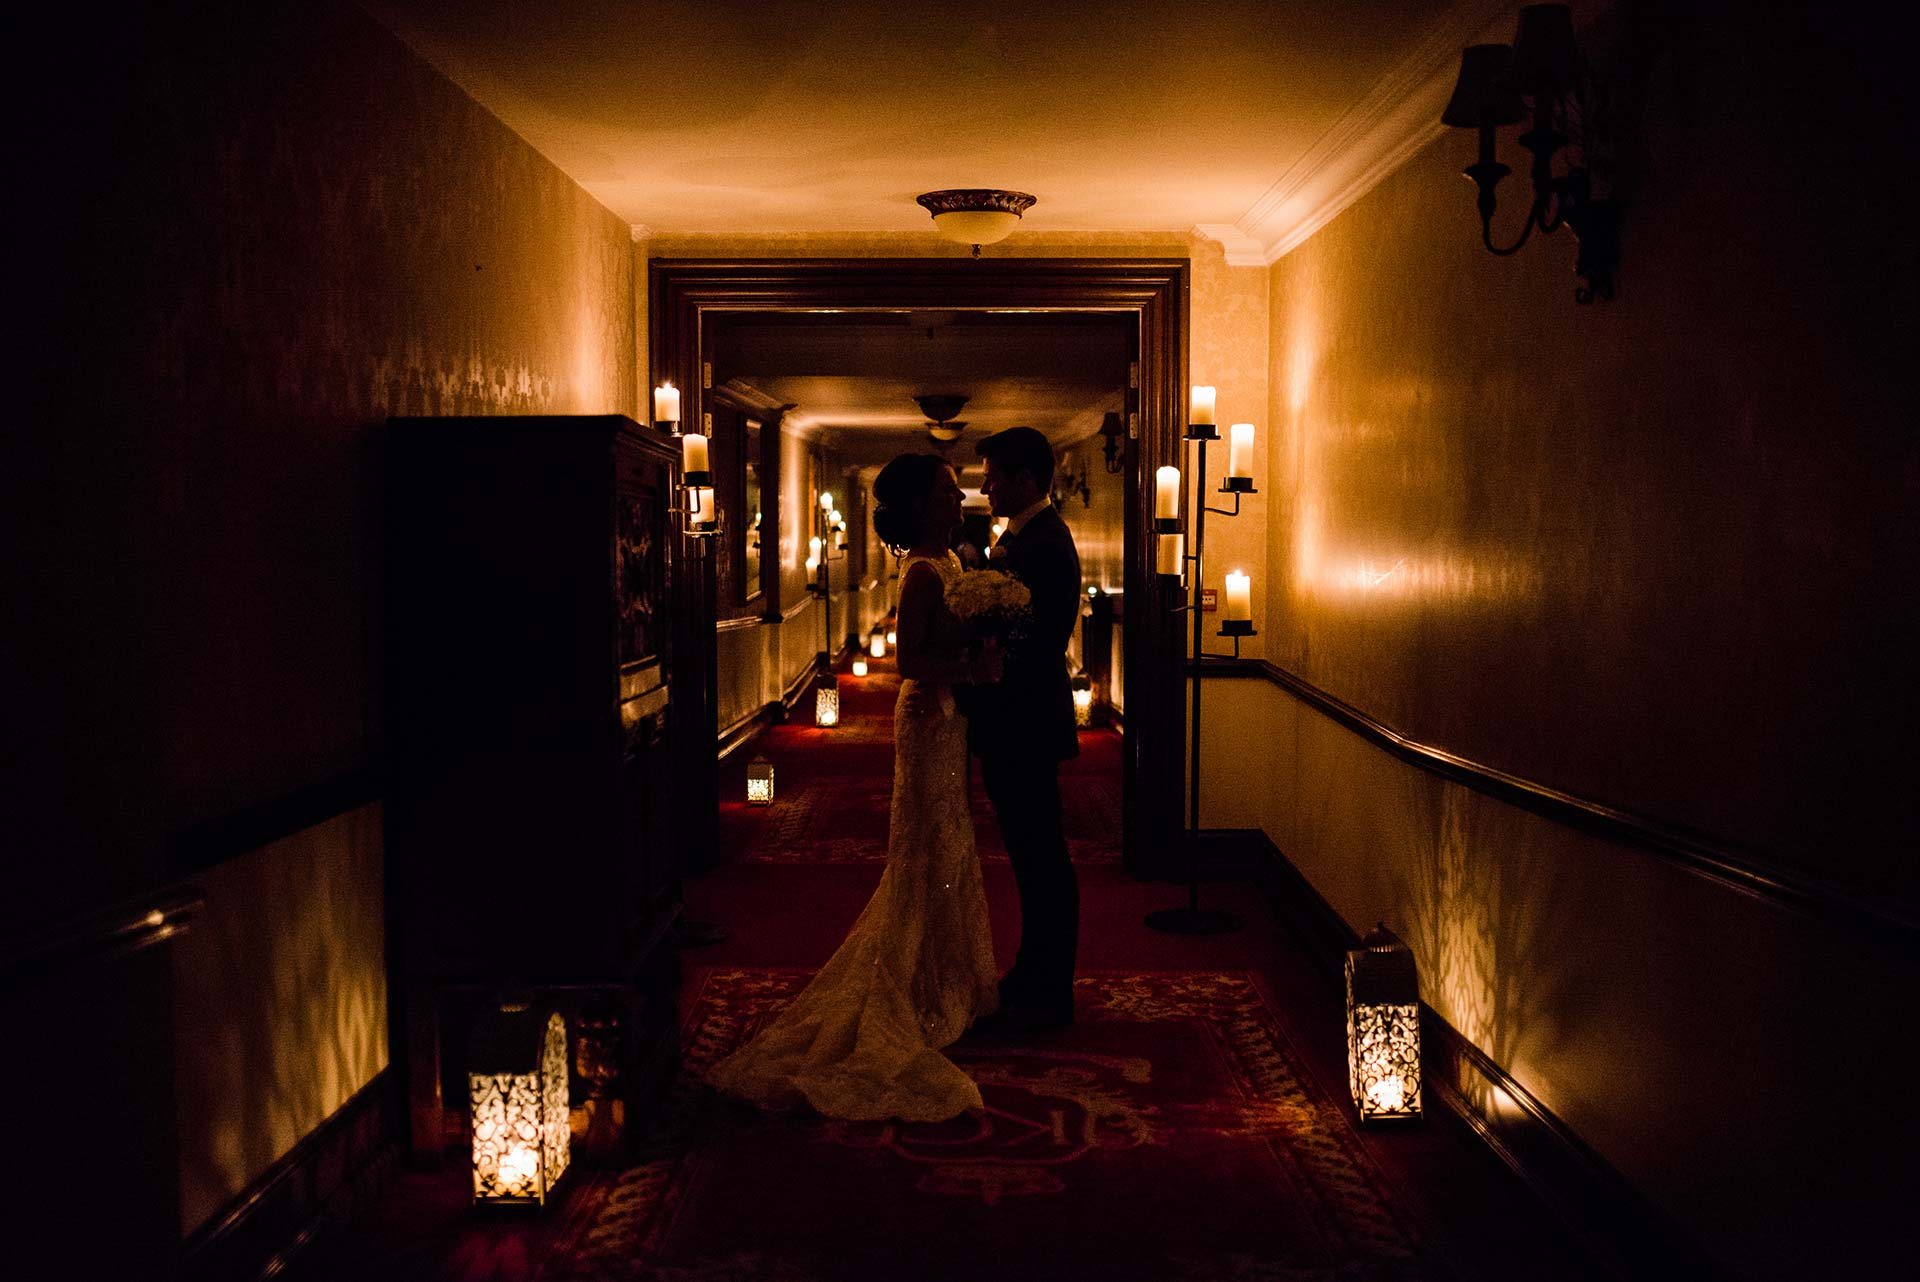 candlelit silhouette of couple in hallway